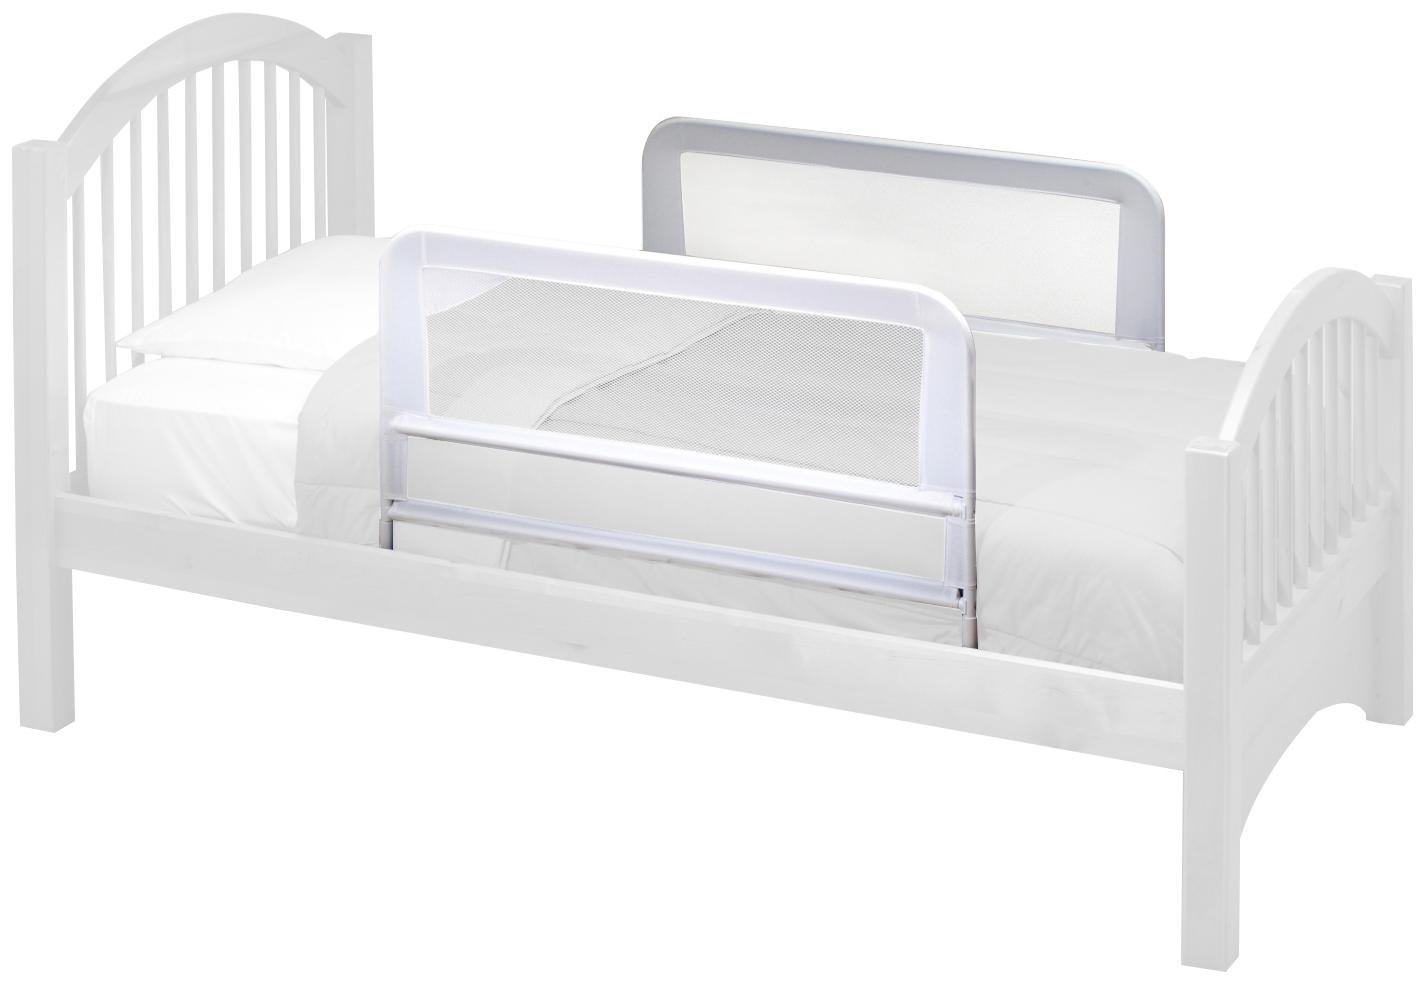 KidCo Children's Mesh Bed Rail, White